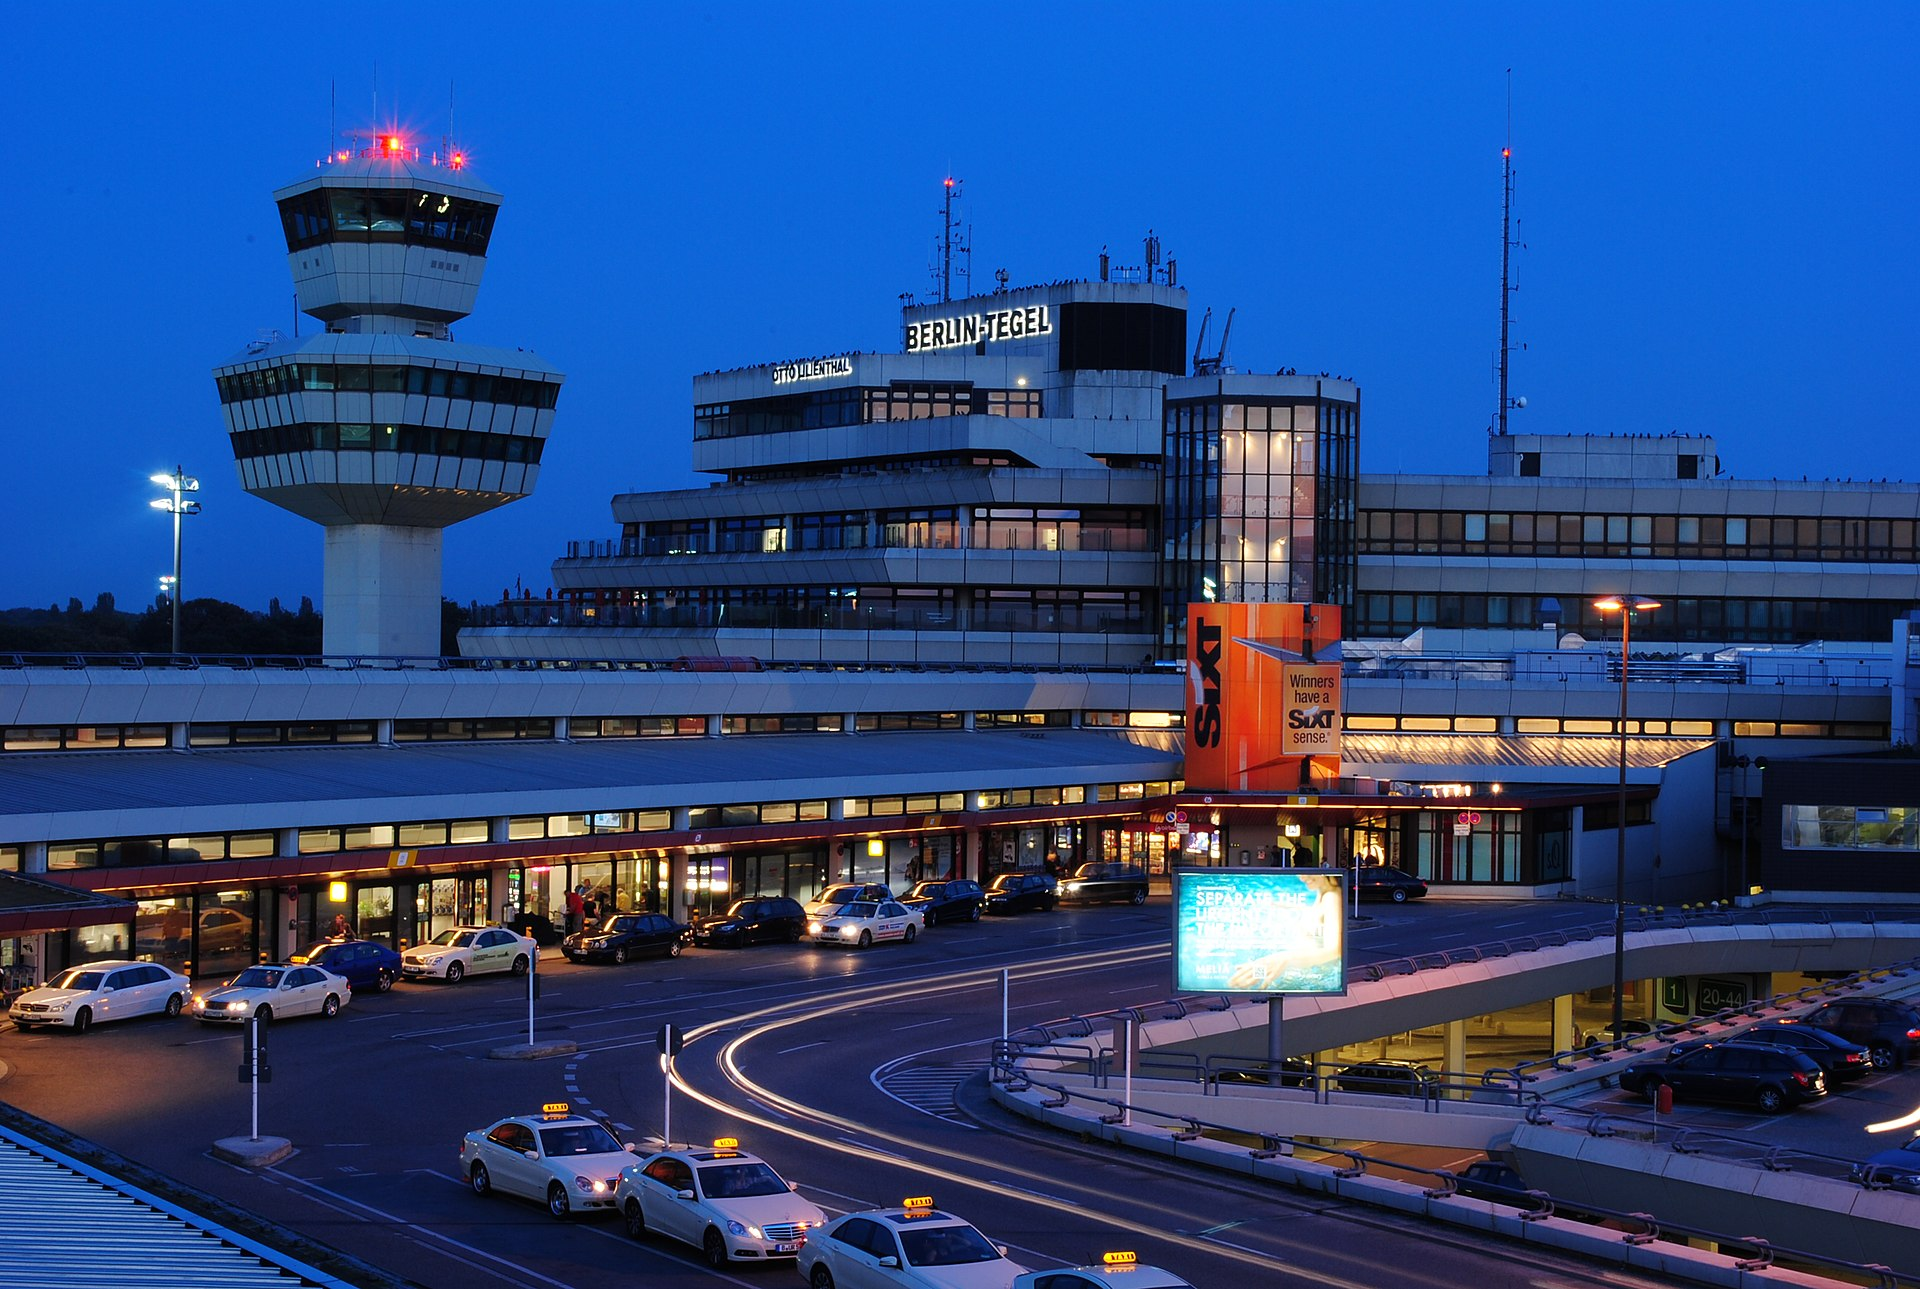 berlin tegel airport wikipedia. Black Bedroom Furniture Sets. Home Design Ideas